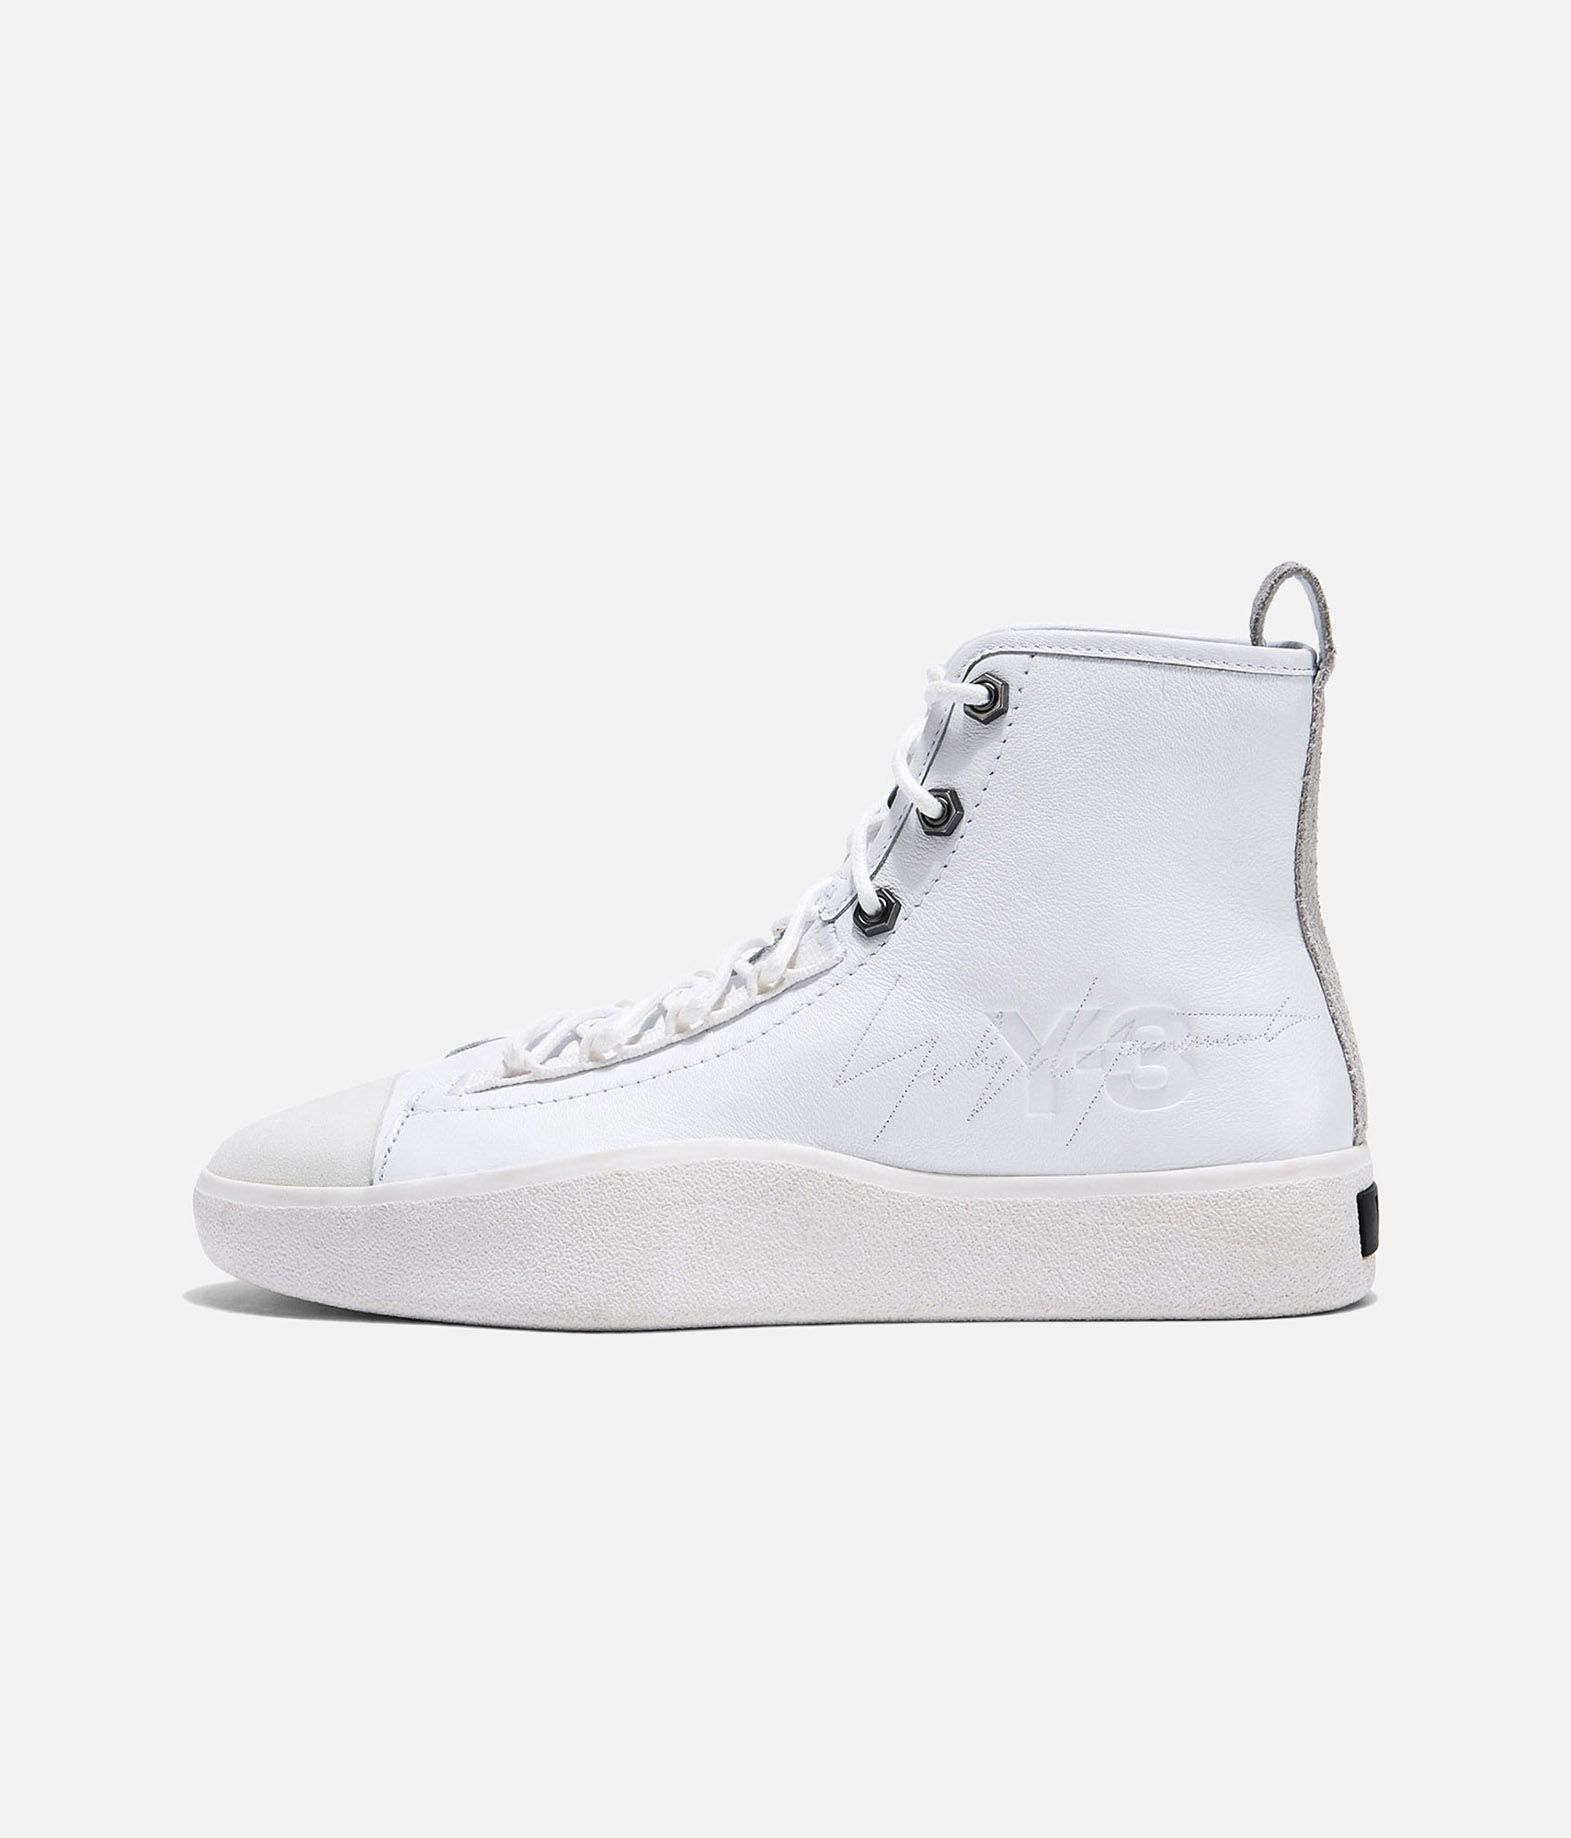 00fa5a1df8a5f ... Y-3 Y-3 Bashyo II High-top sneakers E f ...